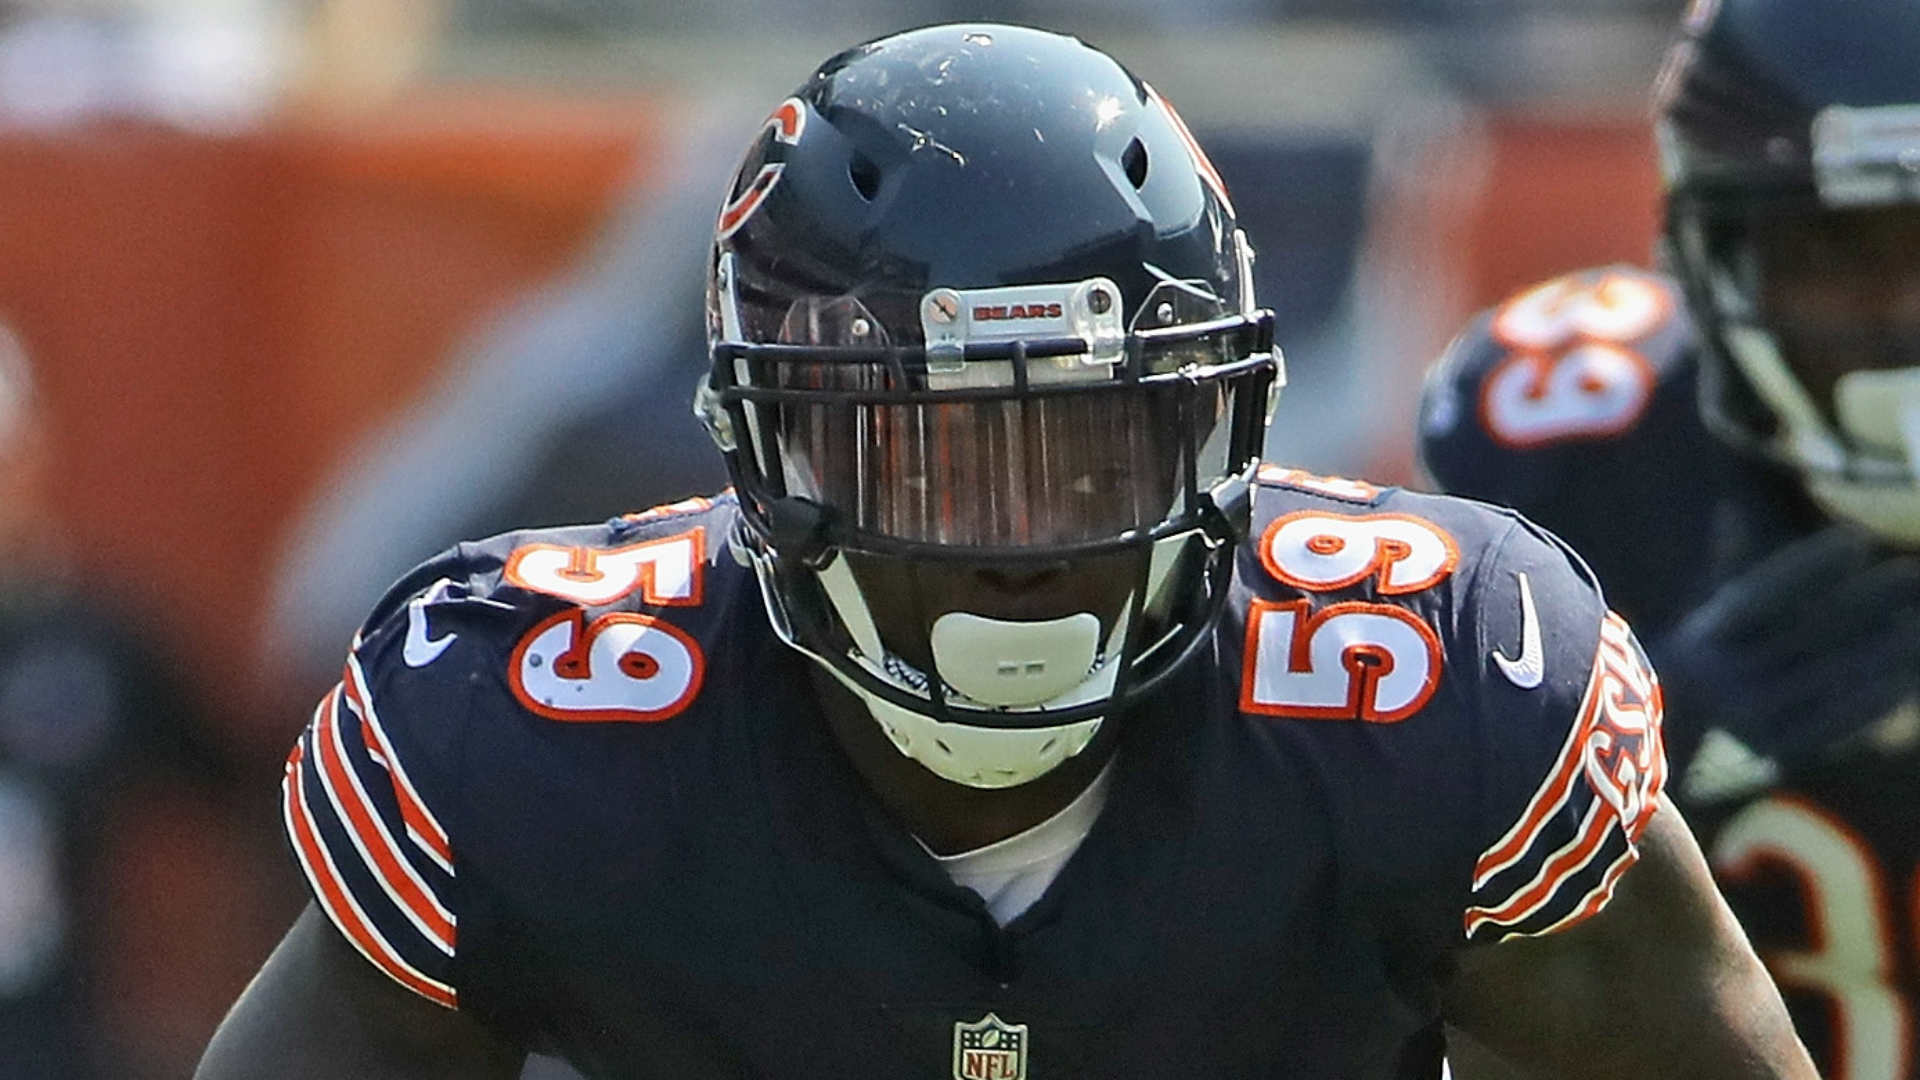 Bears' Trevathan suspension reduced to one game on appeal